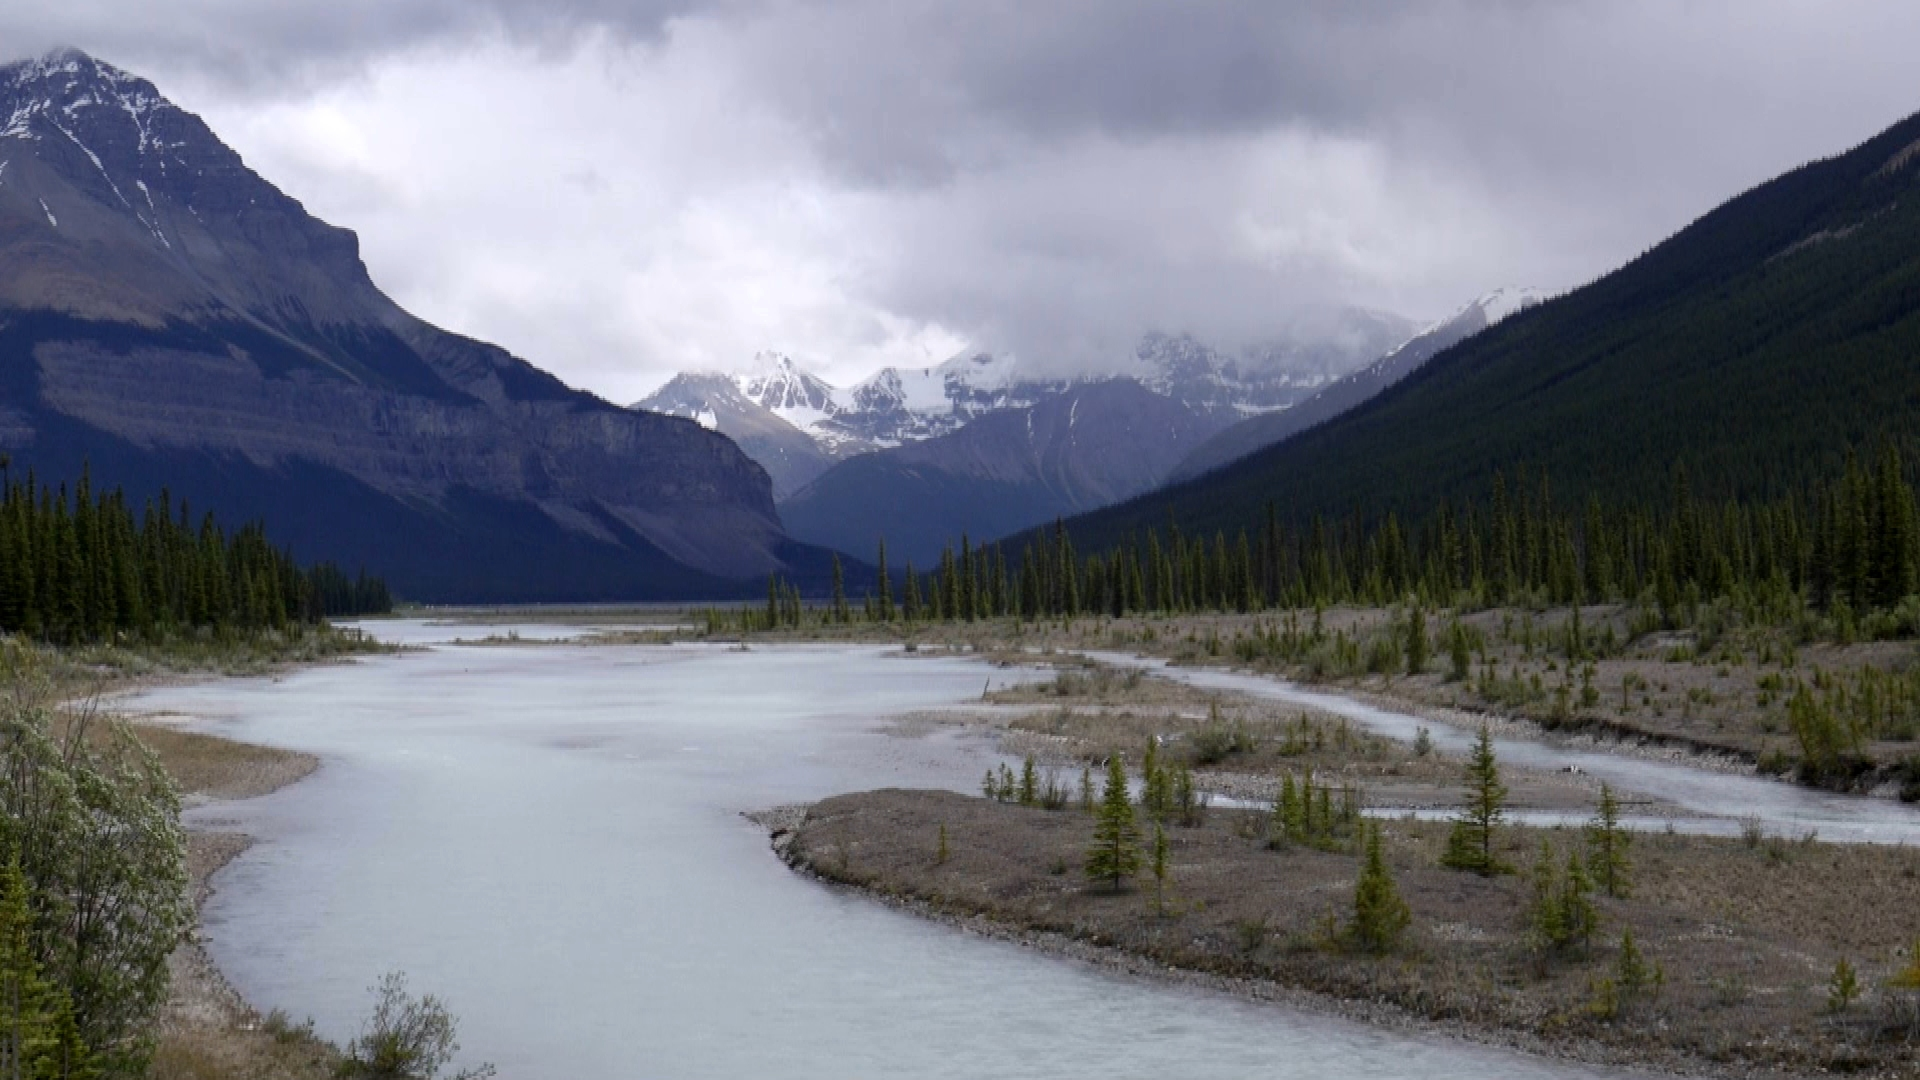 Jasper wilderness, lake and mountain